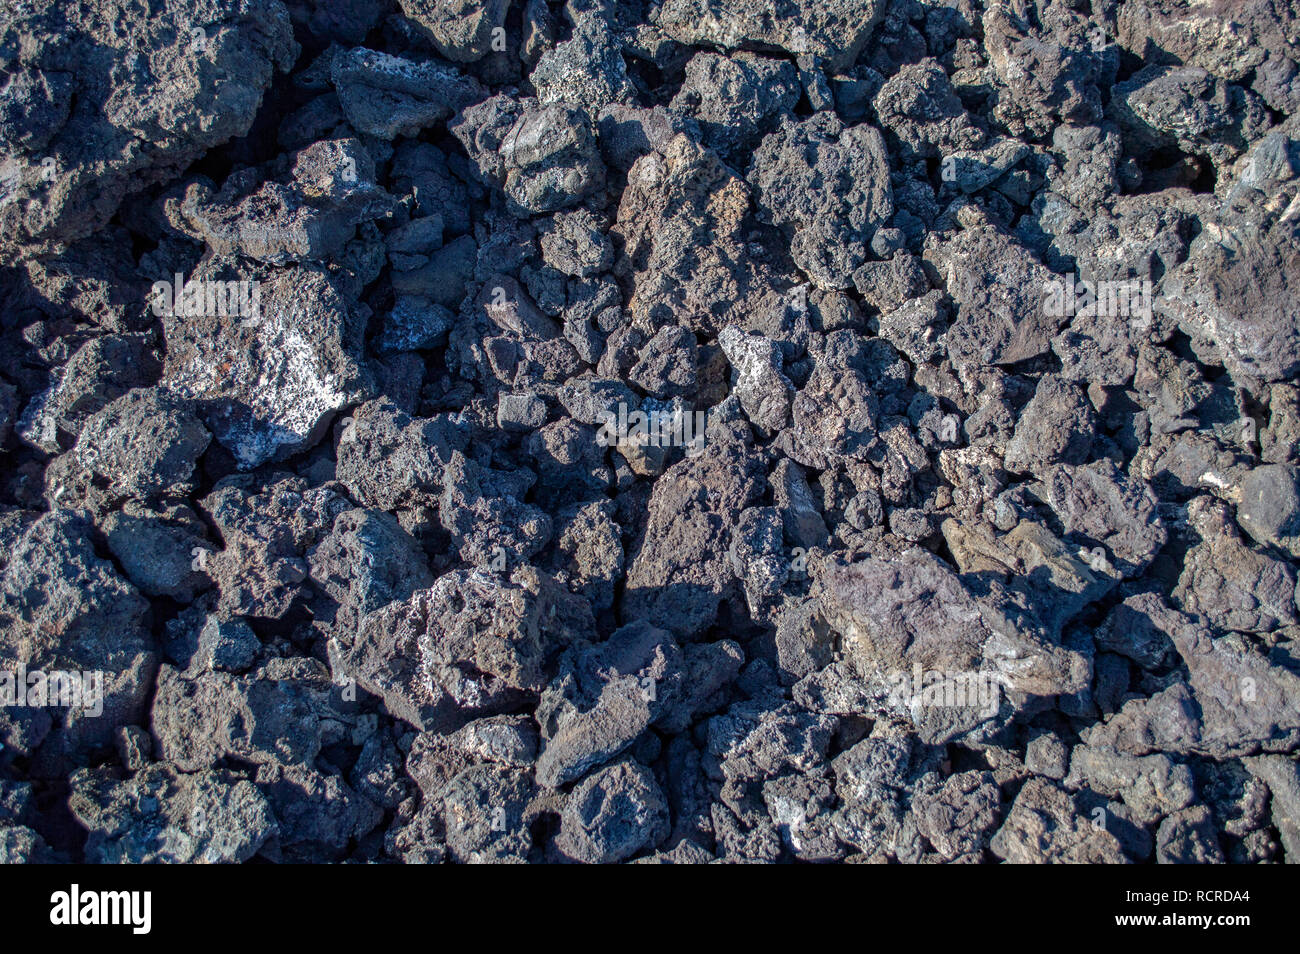 A close up of basaltic rock deposits in Timanfaya National Park in Lanzarote, Canary Islands - Stock Image